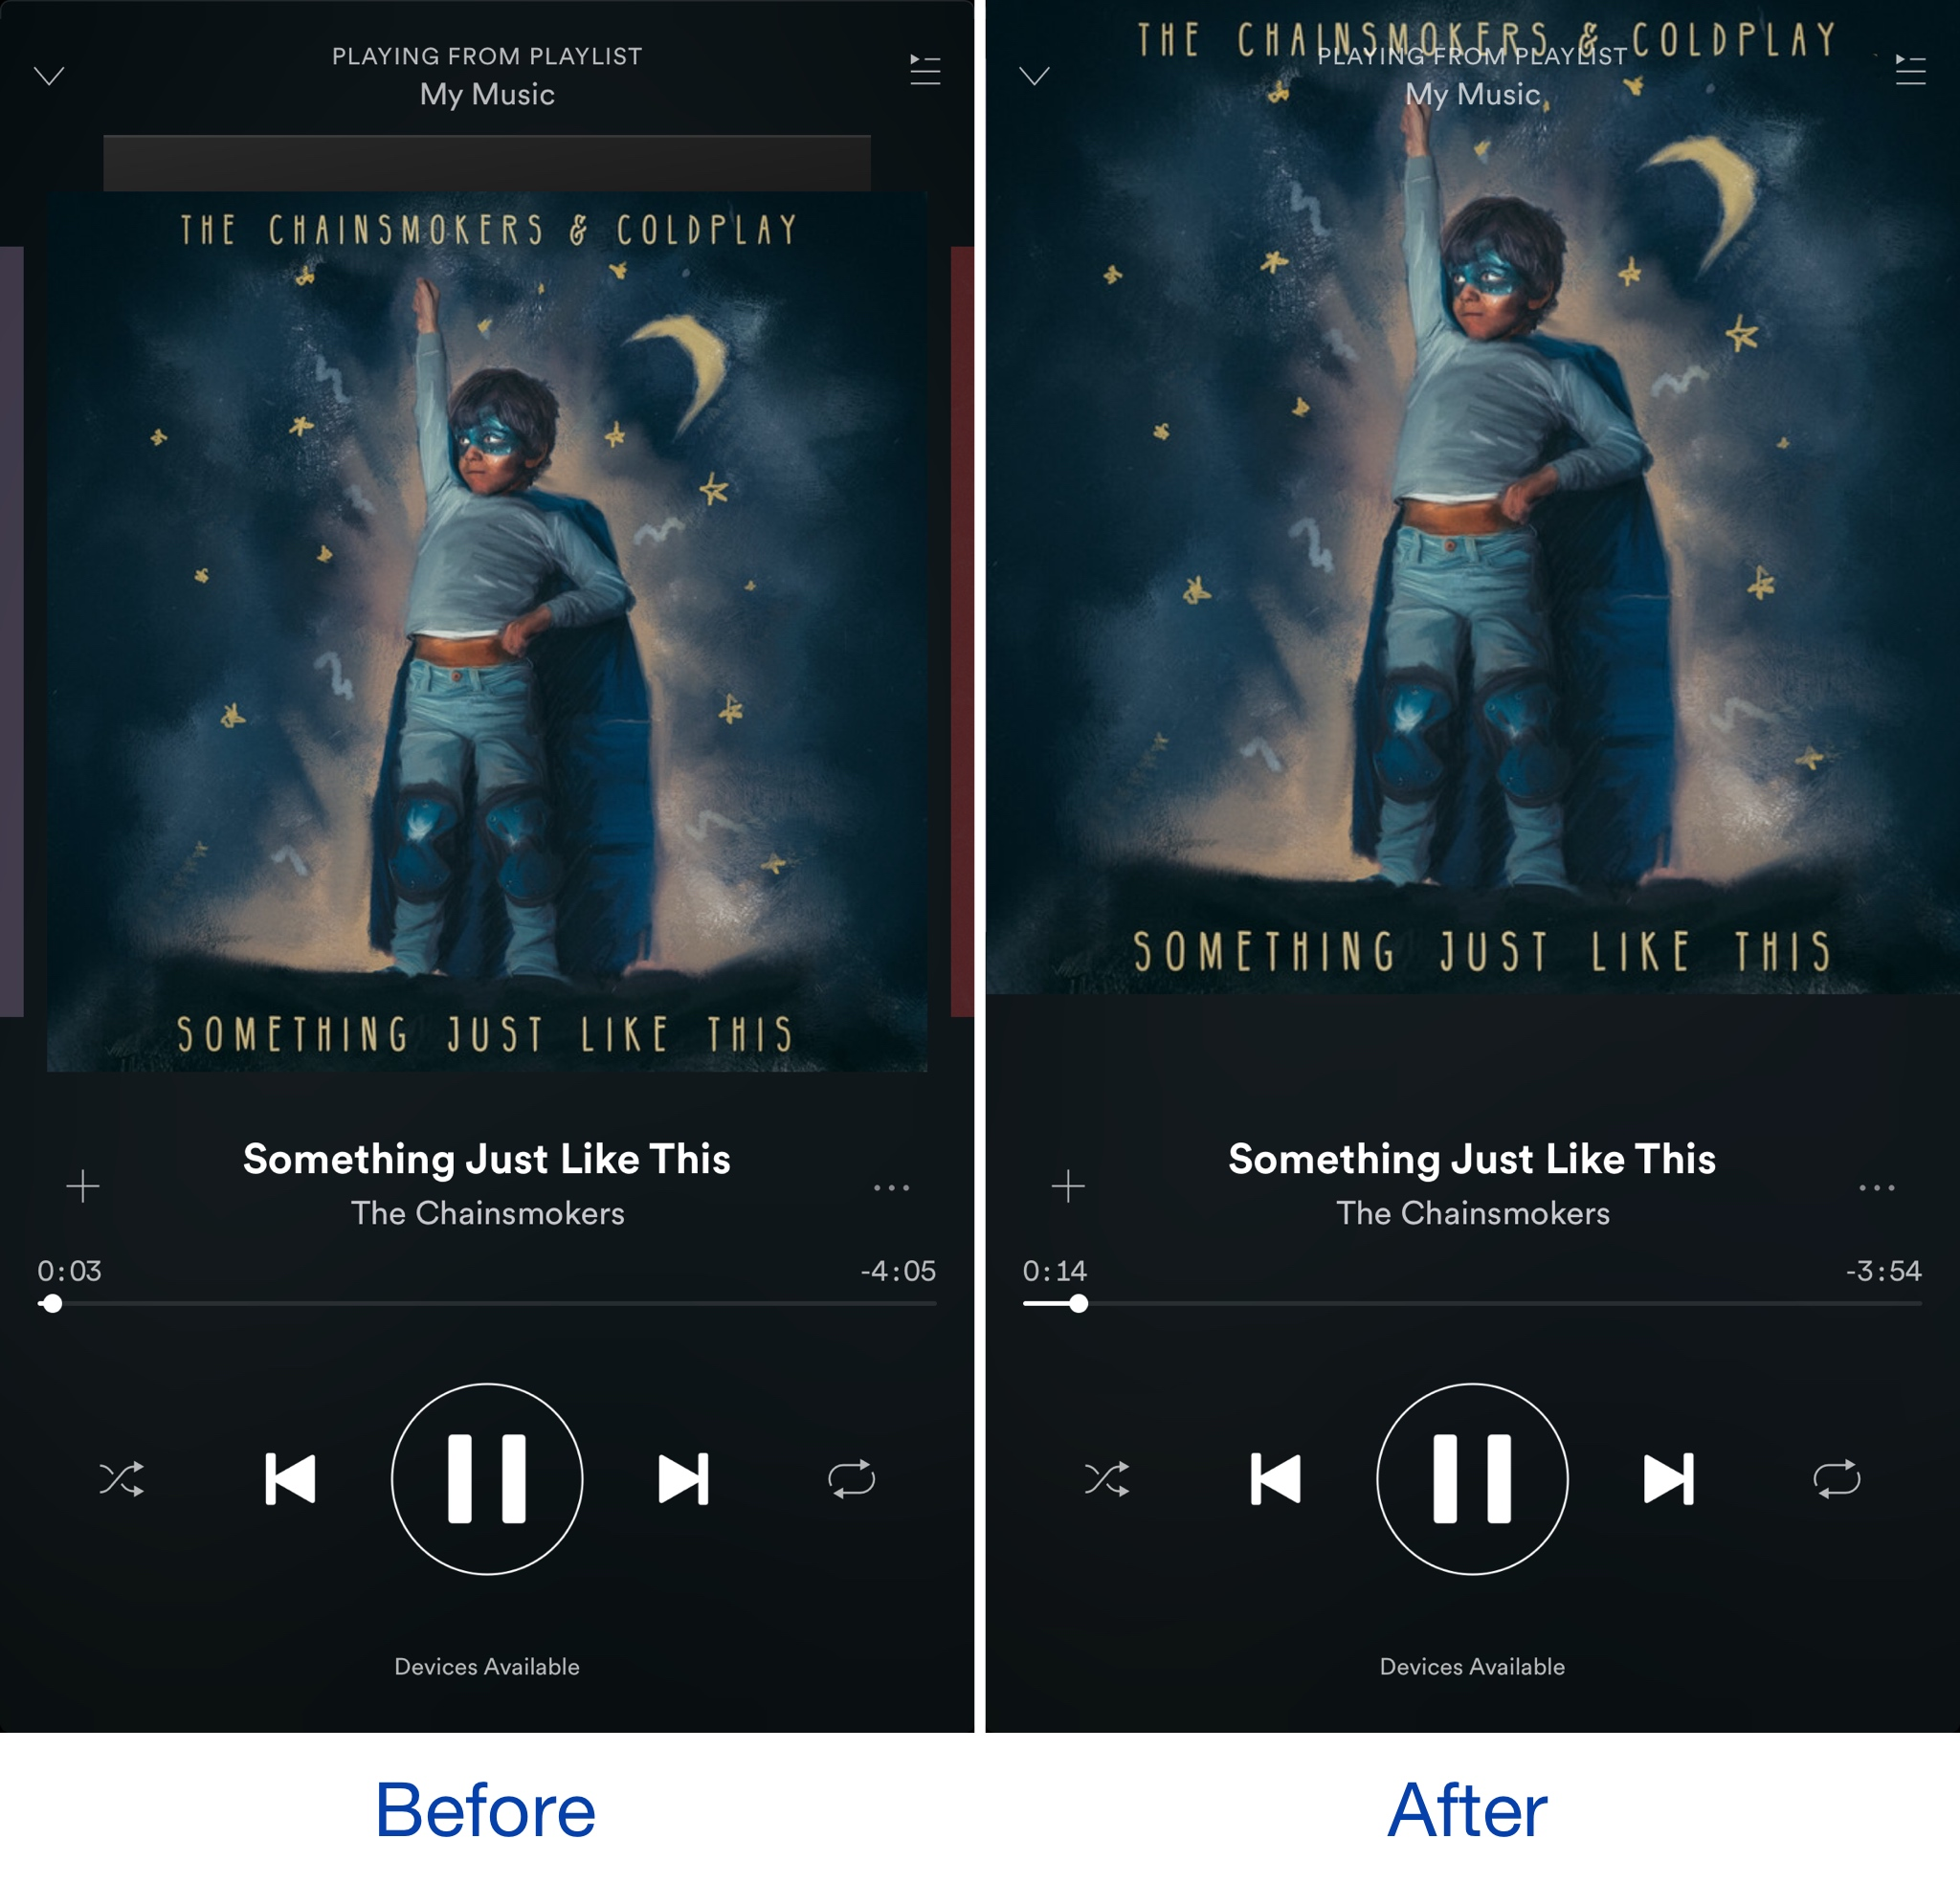 how to get album artwork on iphone